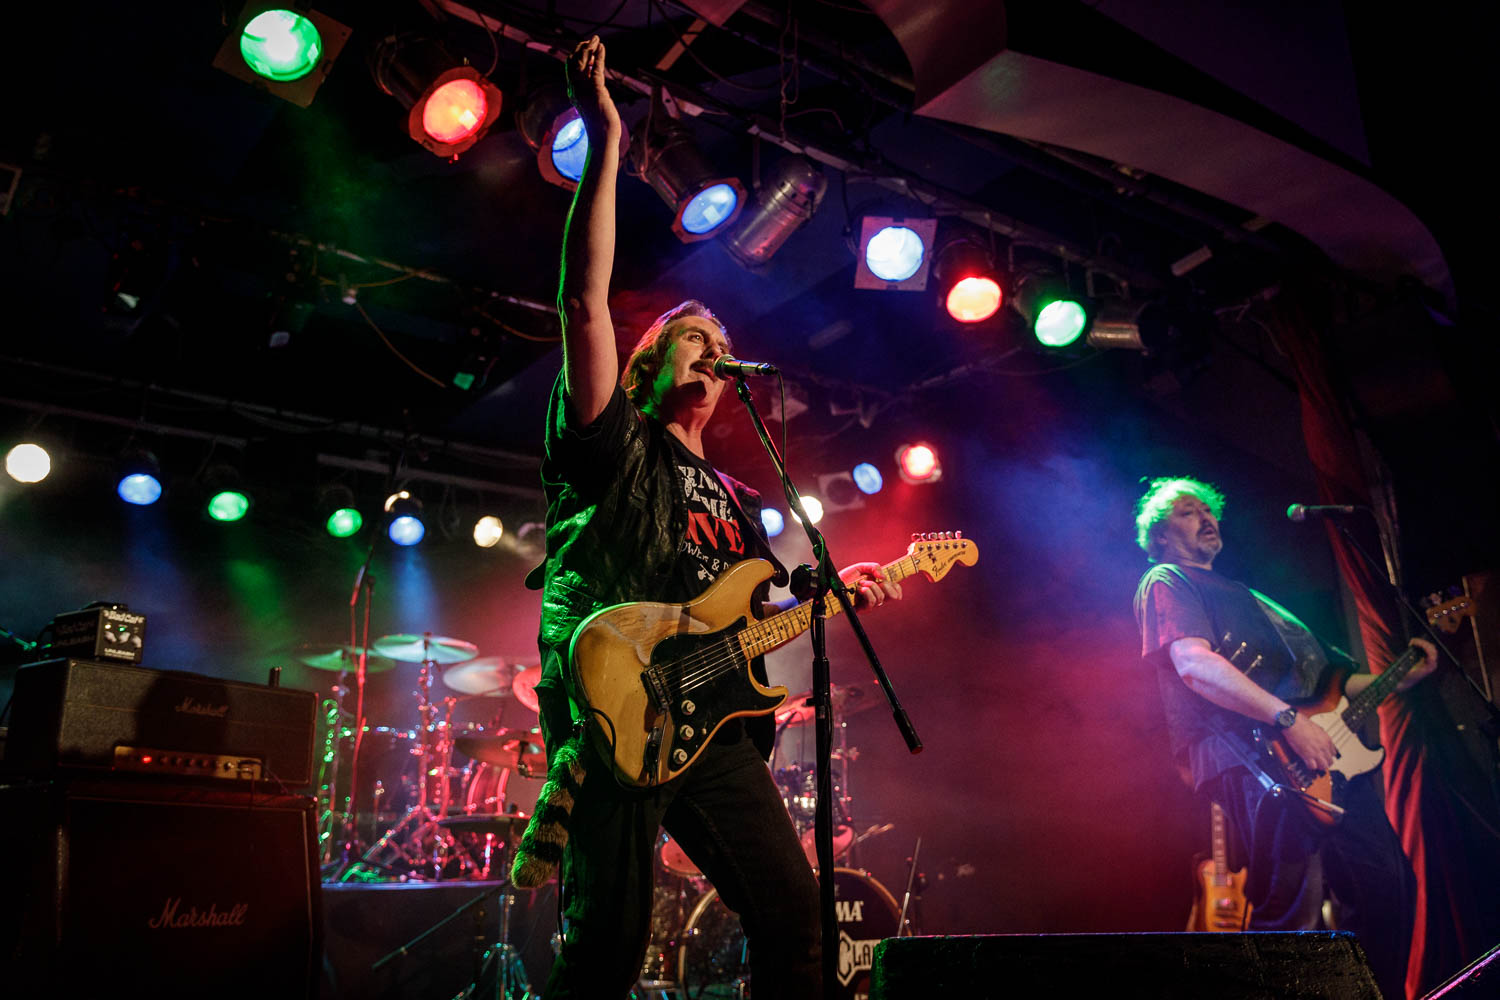 The Clan at The Tivoli in Buckley on March 30th 2019.